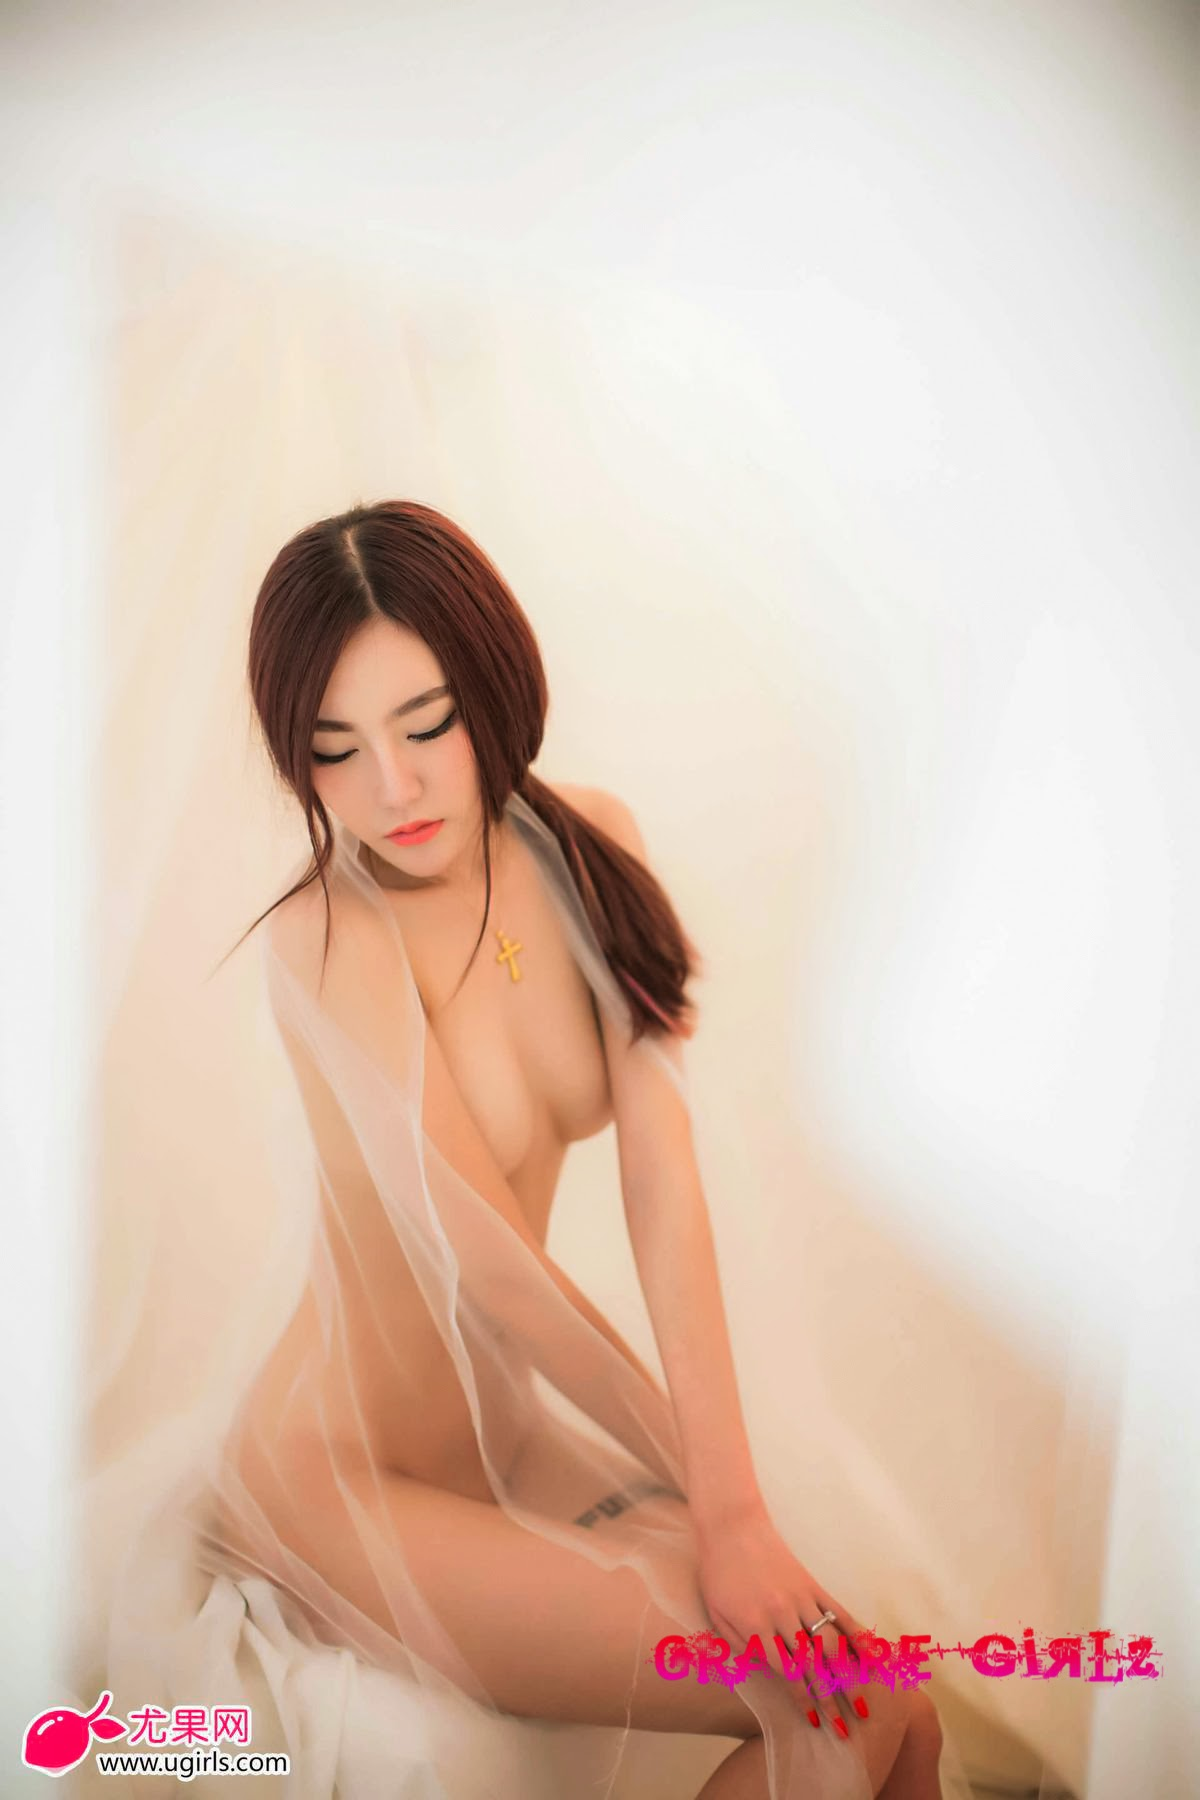 Chi Wan Guo 湿婉郭 | Young Chinese Girl Hot! Ugirls_尤果网 No.26 ...